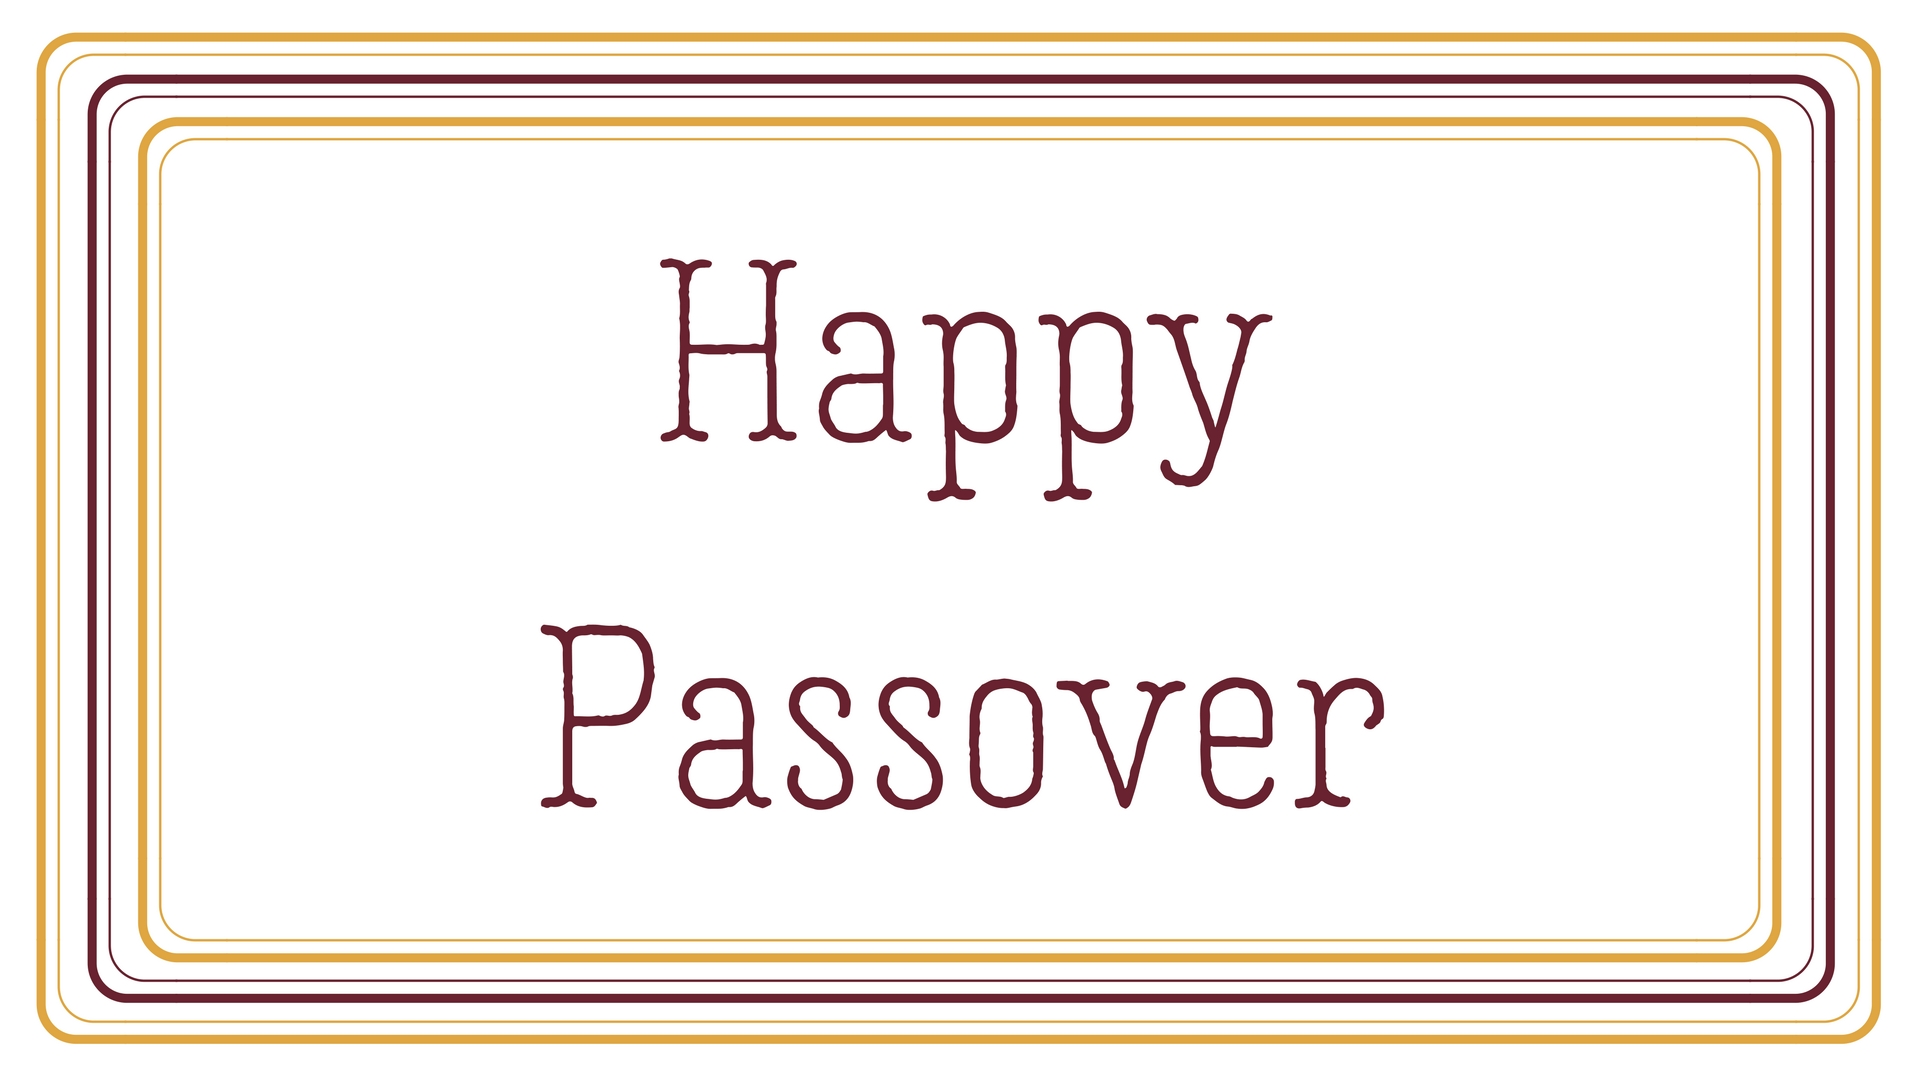 Happy Passover Rectangle Frame Greeting Card Postcard 11